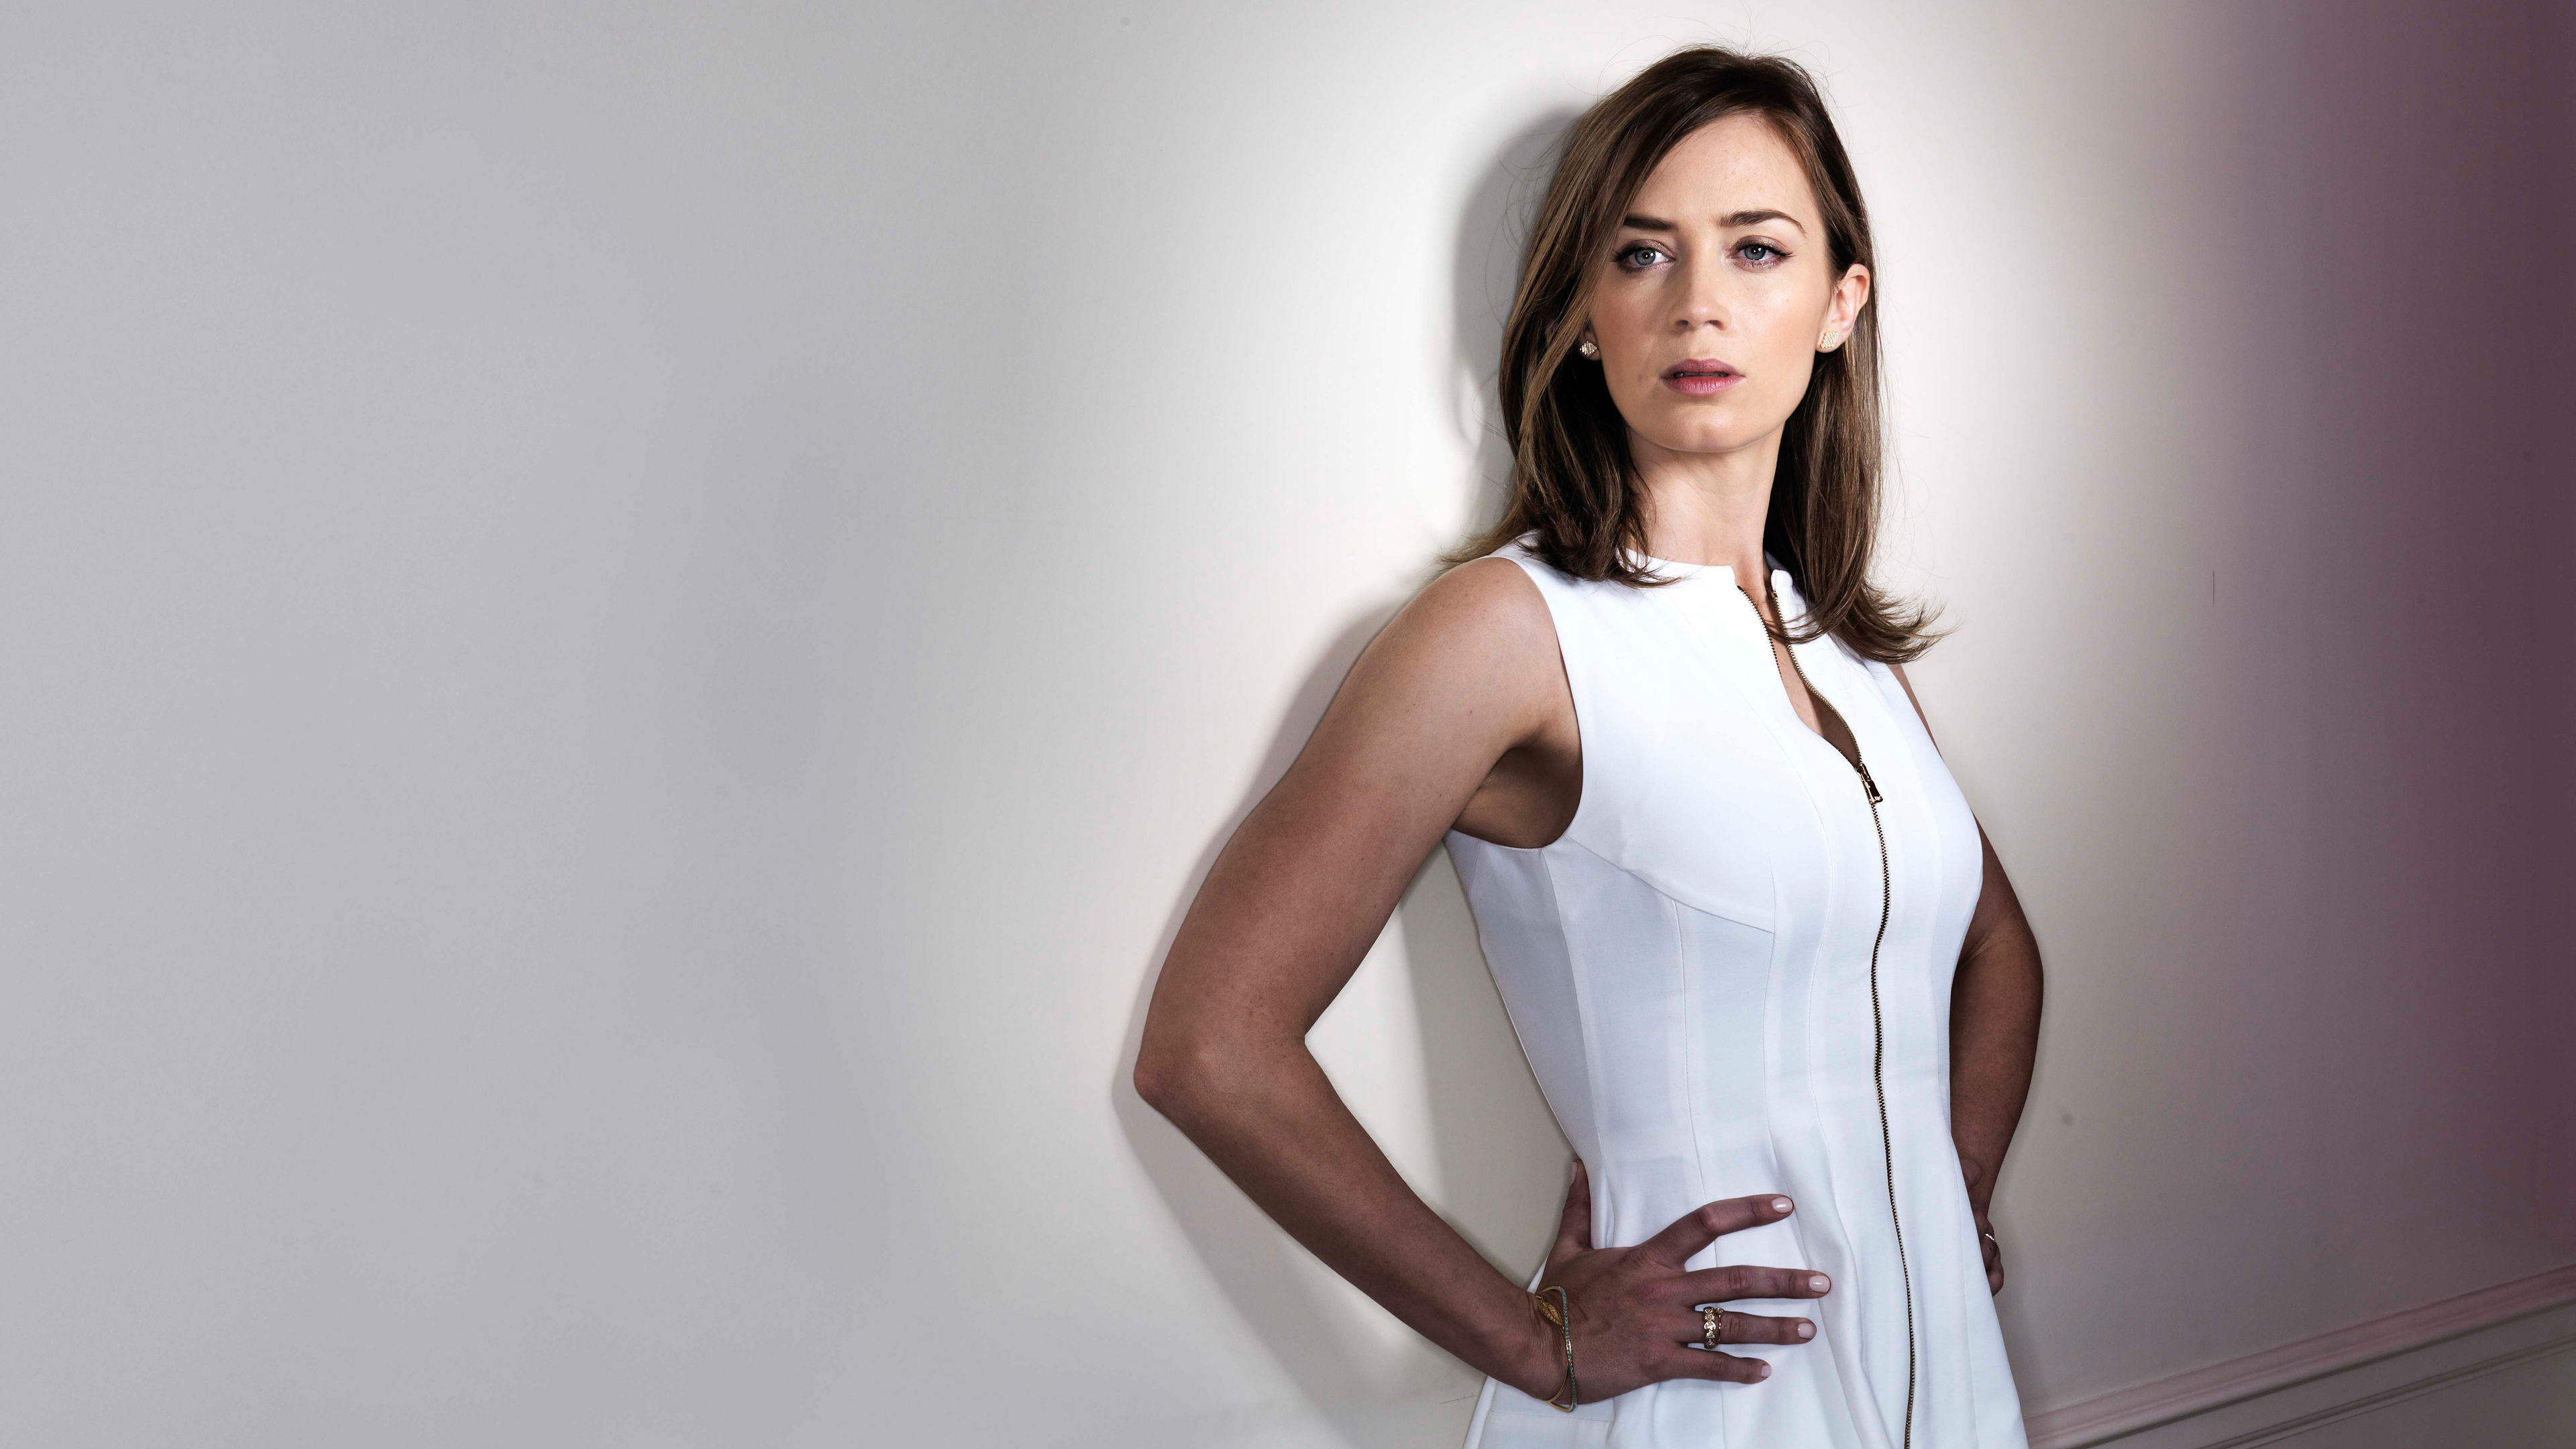 emily blunt usa today 4k 5k 1536861782 - Emily Blunt Usa Today 4k 5k - hd-wallpapers, girls wallpapers, emily blunt wallpapers, celebrities wallpapers, 5k wallpapers, 4k-wallpapers